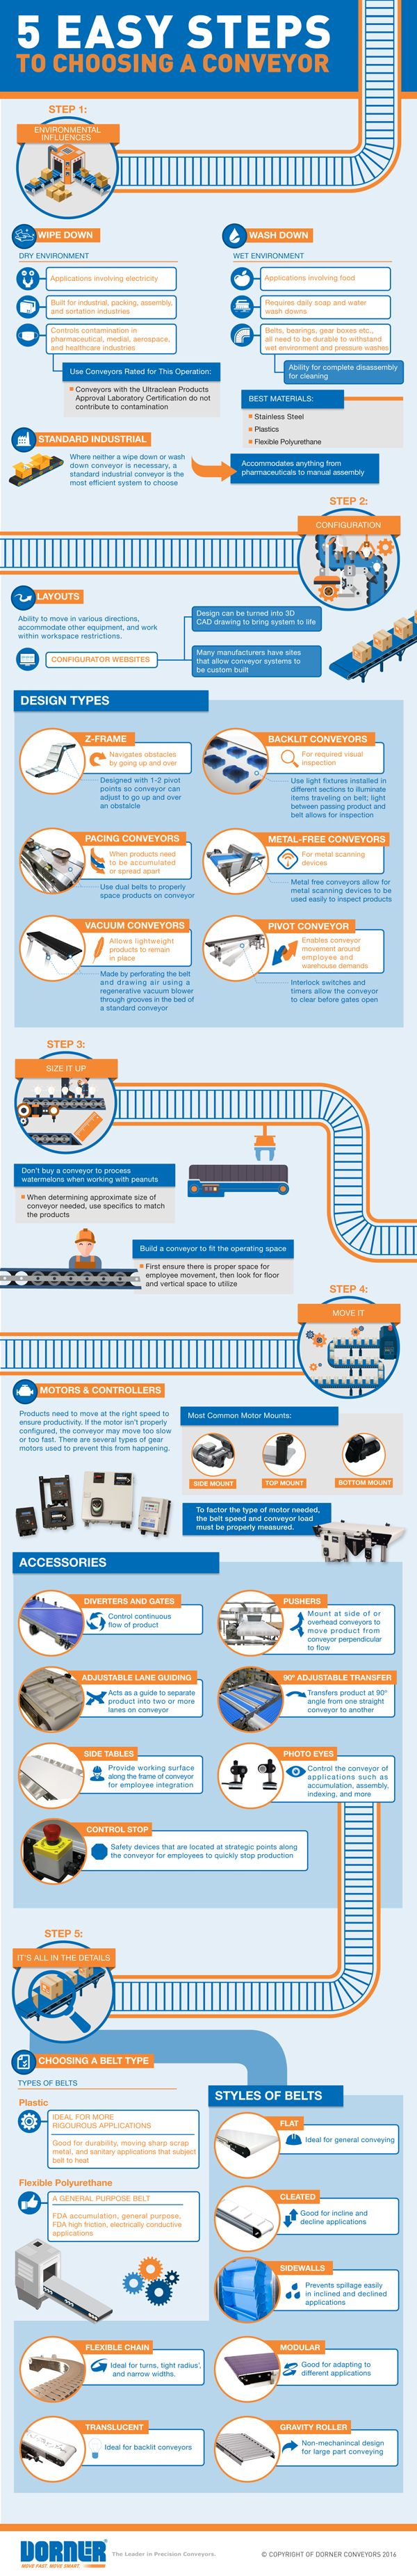 While conveyors have the seemingly simple task of moving an object from point A to point B, this activity has evolved over time to become a highly efficient process that's an integral component of all material handling systems. Finding a conveyor that matches the performance requirements needed for your application can be a complicated and overwhelming task. This infographic from Dorner lays out five easy steps in choosing a conveyor system.